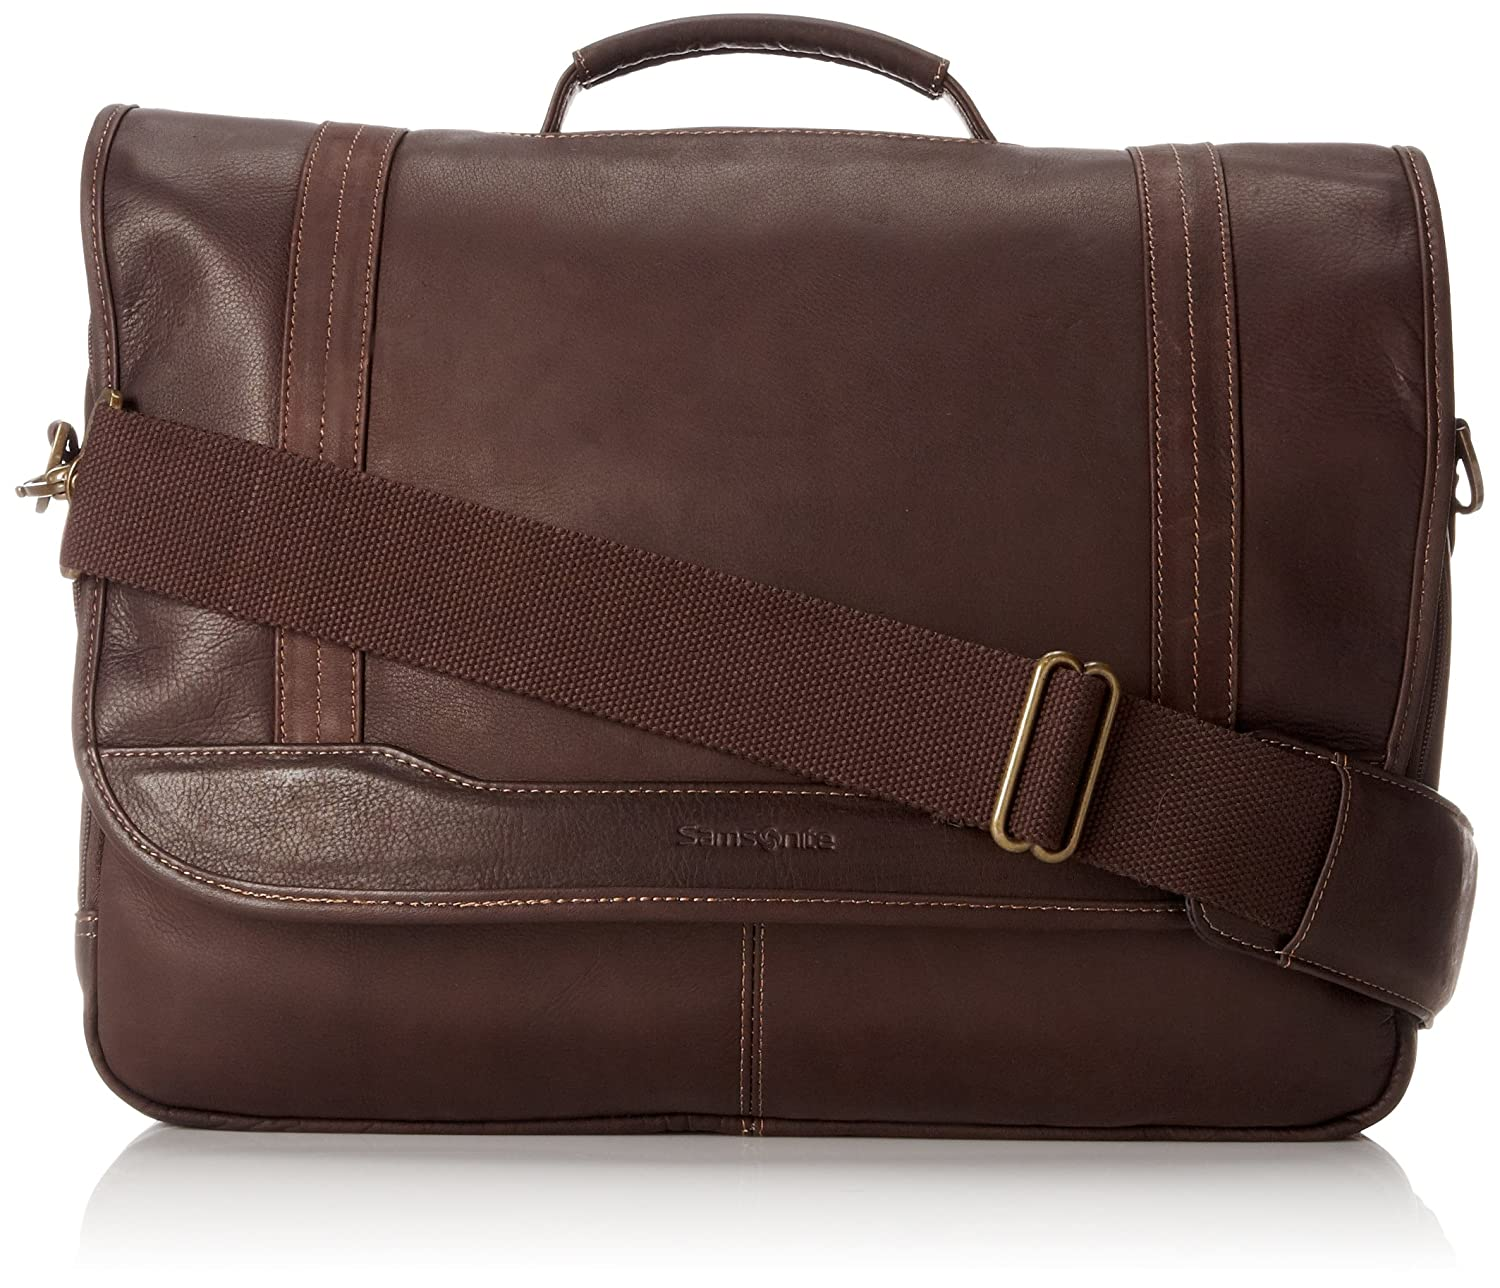 Samsonite Colombian Leather Flapover Briefcase Brown One Size Samsonite Corporation 50789-1139